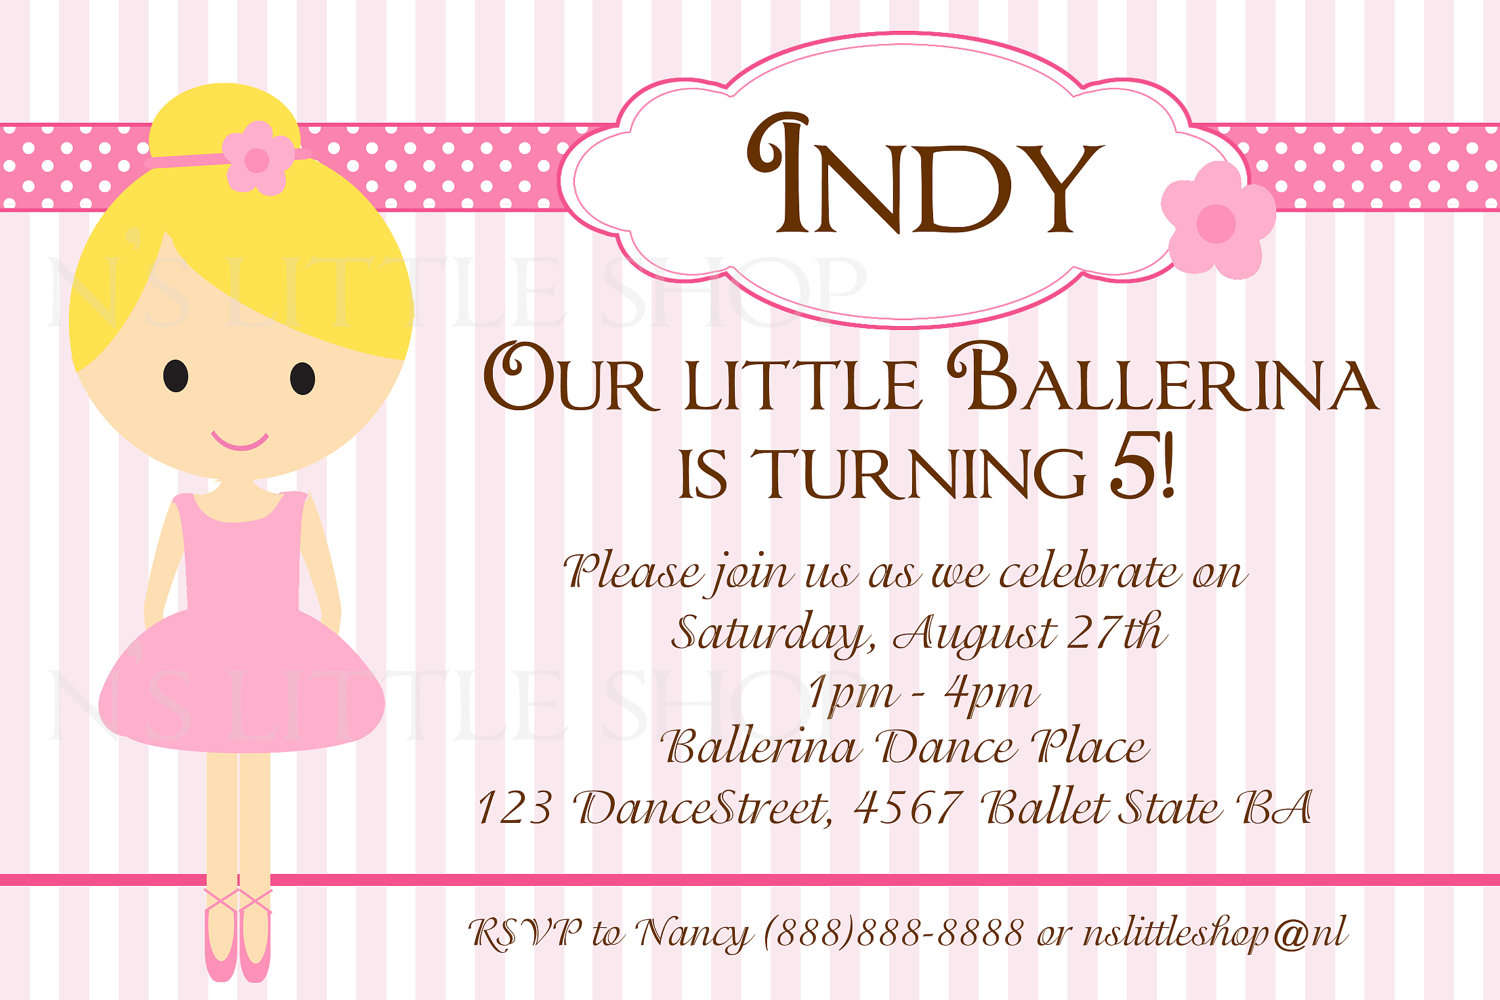 design birthday party invitations free ; Chic-Kids-Party-Invitations-To-Create-Your-Own-Online-Party-Invitations